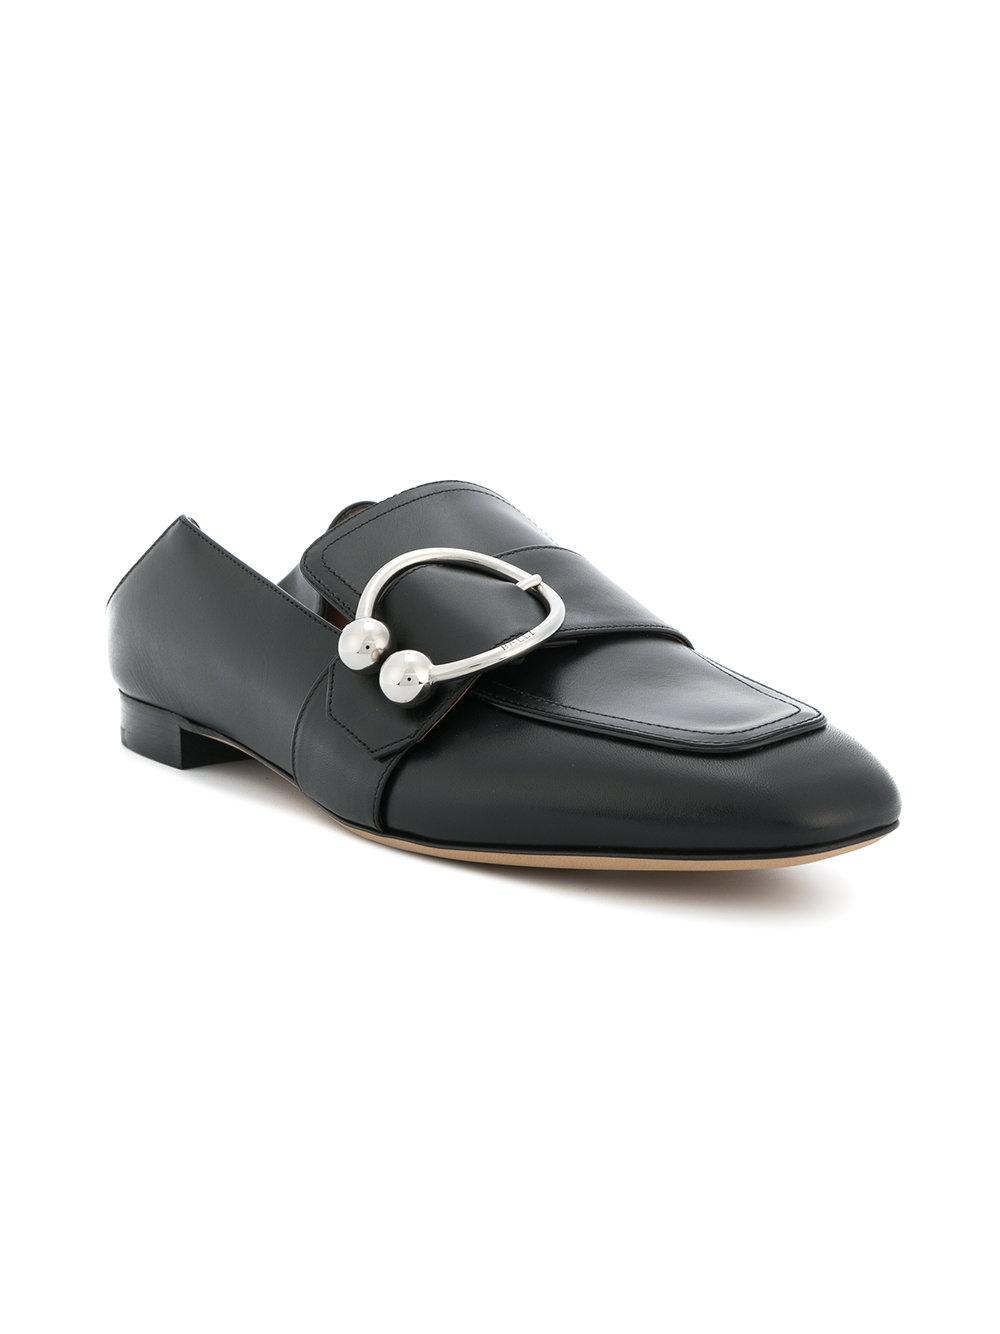 Malinda Loafers Lyst In Bally Black fb7gY6y